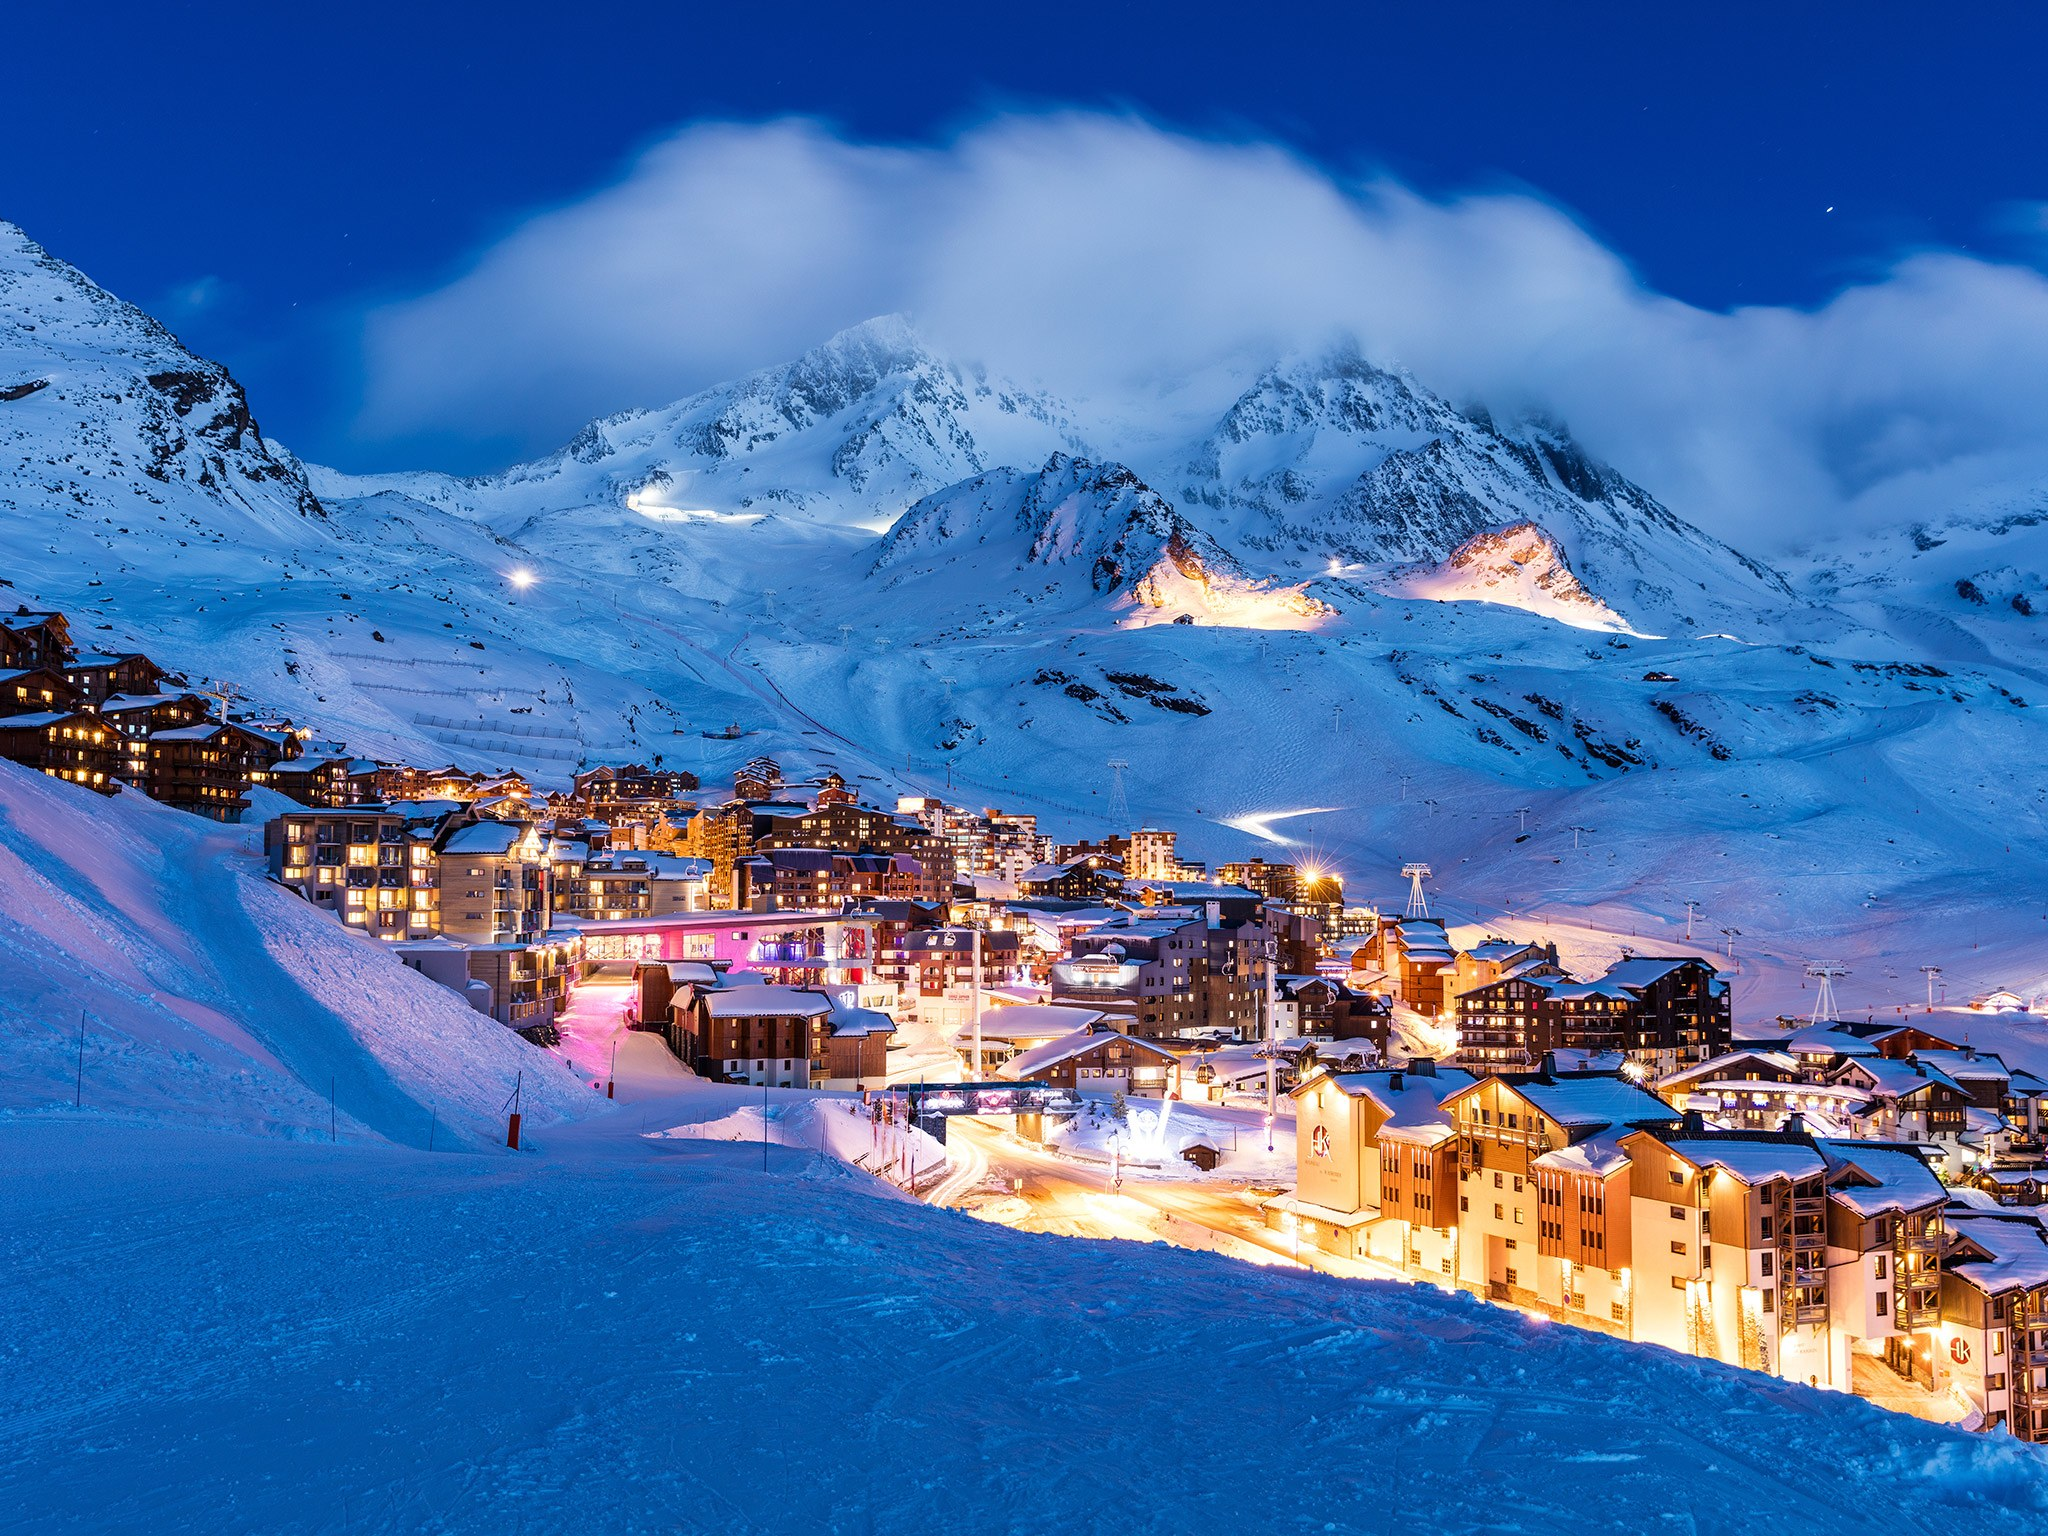 Valthorens France Gettyimages 668777775 Dinamik Turs